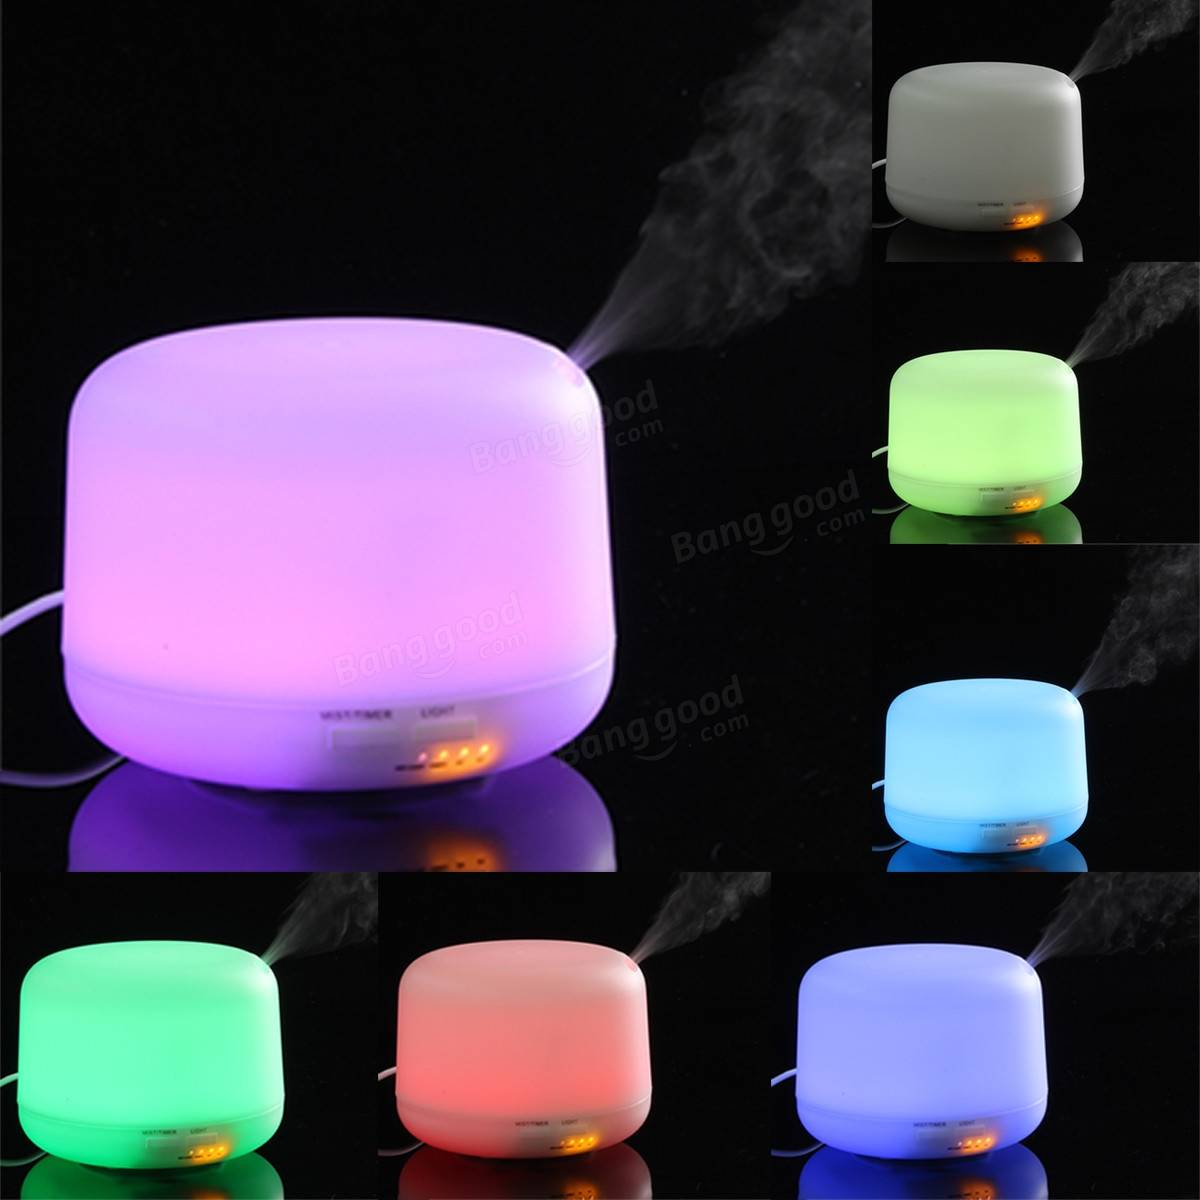 Aroma night lamps - Led Air Diffuser Purifier Atomizer Ultrasonic Aroma Cool Mist Humidifier Night Light For Home